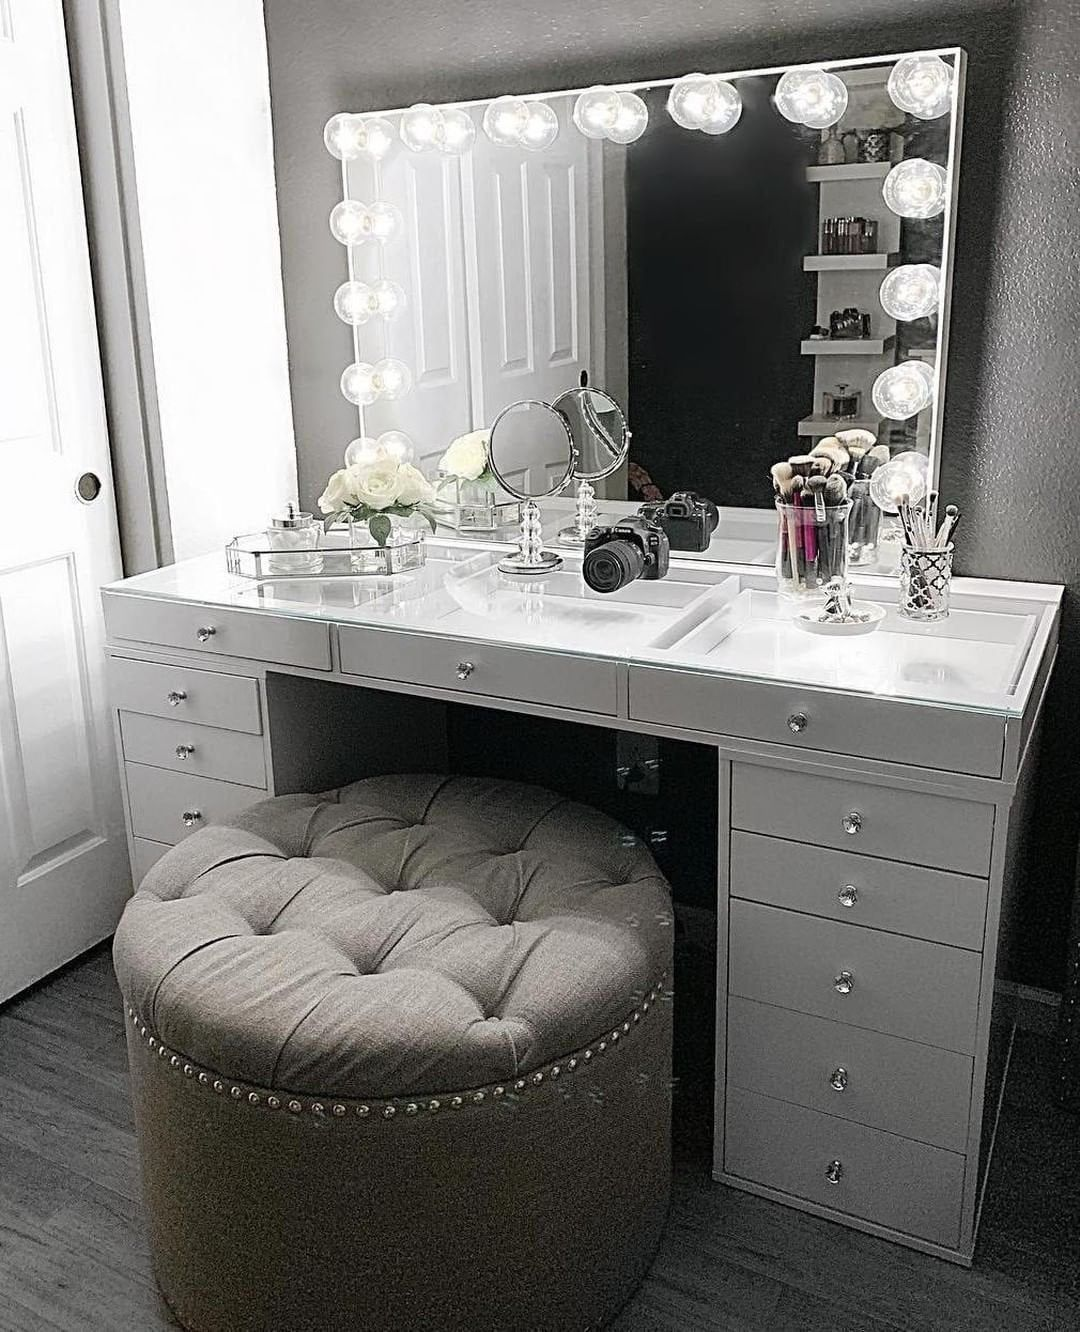 Hollywood Makeup Vanity Mirror with Lights-Impressions Vanity Glow Pro Makeup Vanity Mirror with Dimmer Lights for Tabletop or Wall Mounted